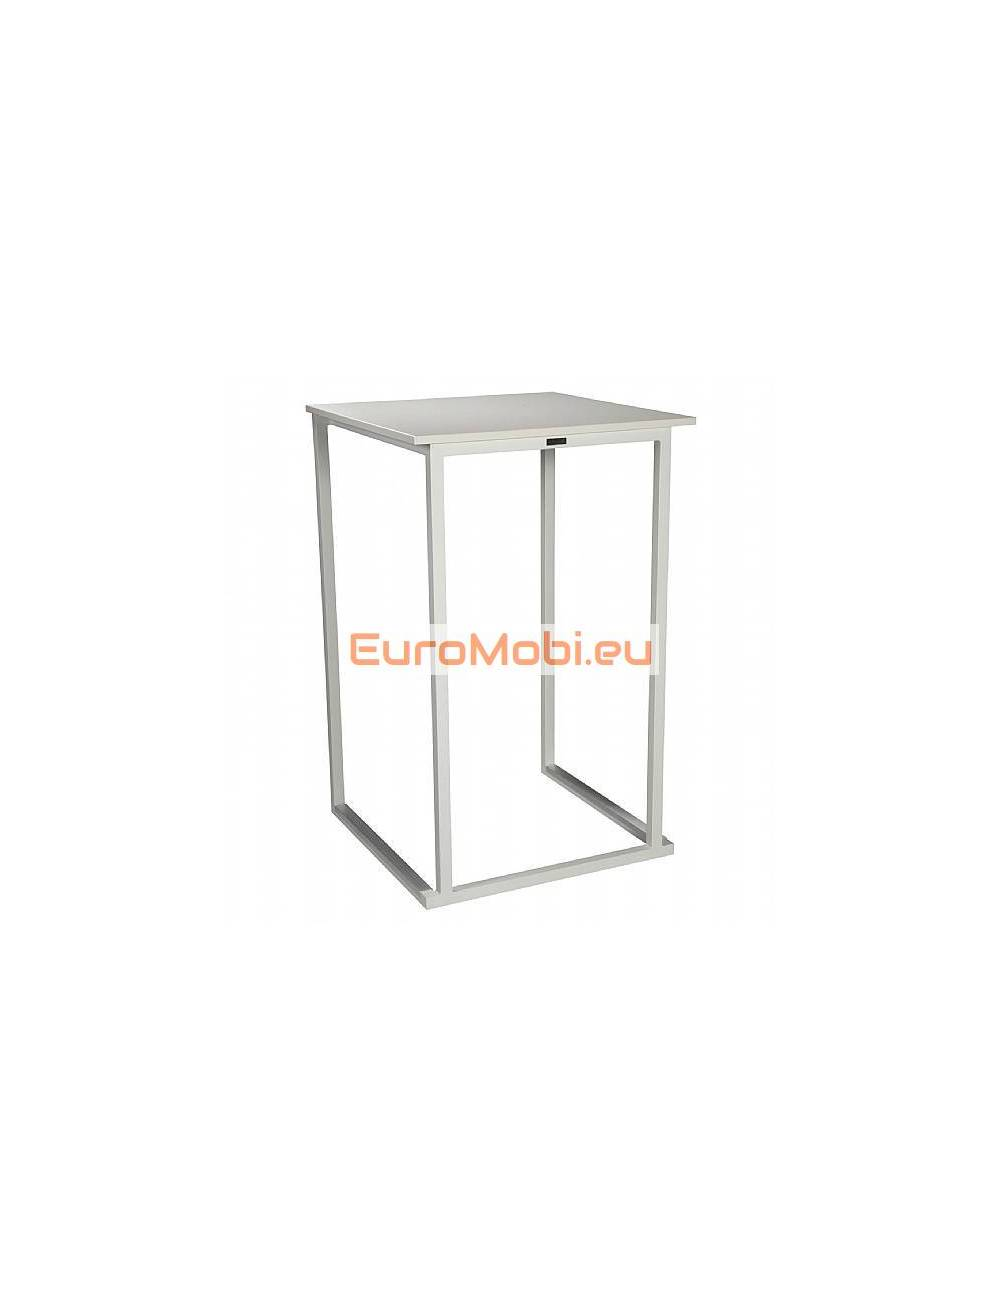 standing table Moma Square white 70 X 70 cm